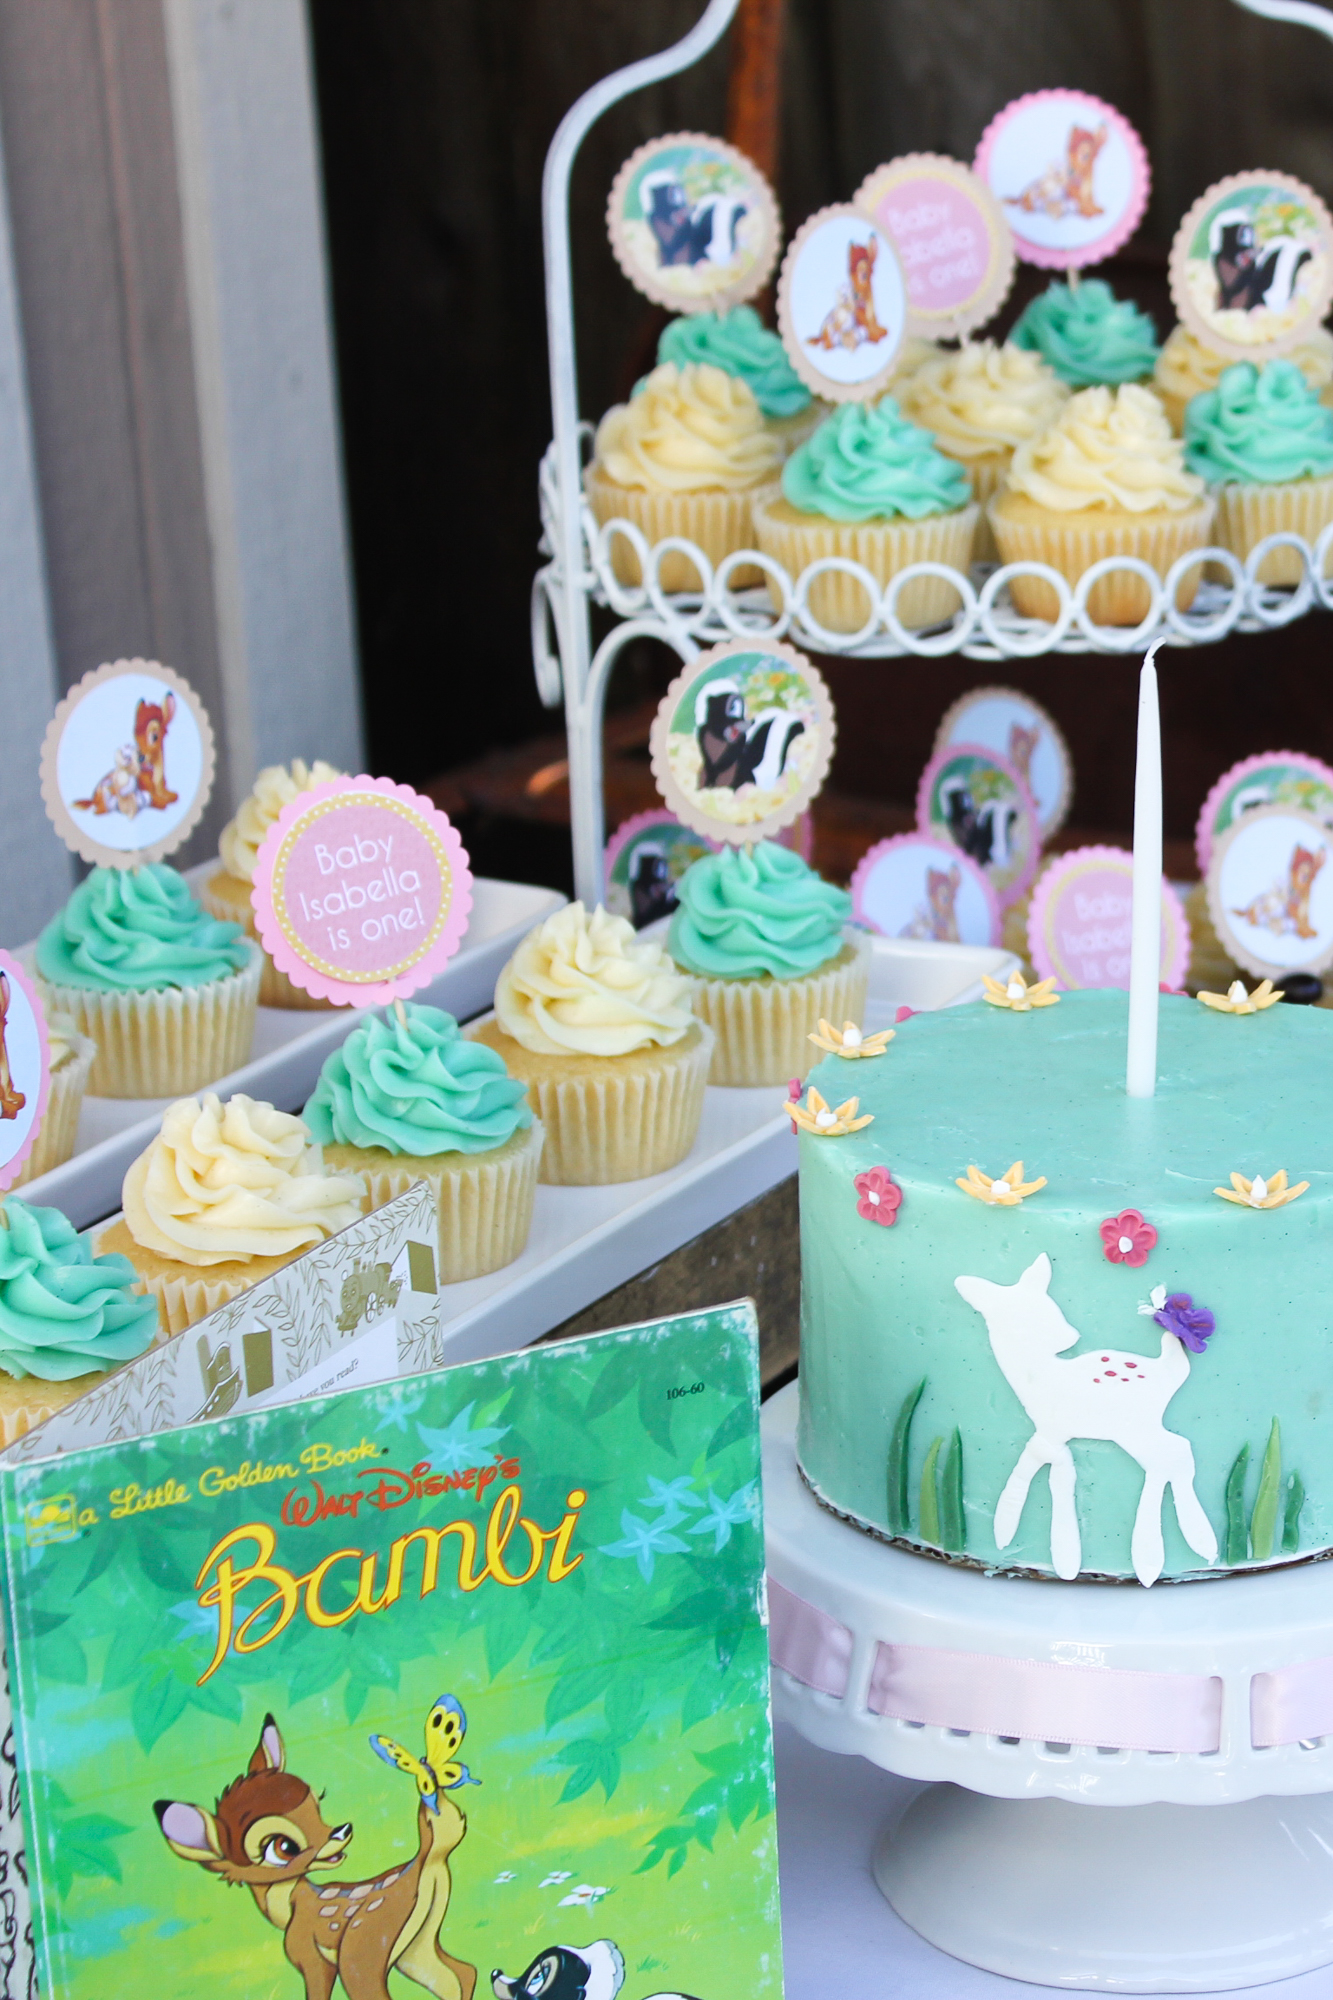 What a cute Little Golden Book Party | Bambi and Poki Little Puppy #kidsbirthdayparty #partytheme #littlegoldenbooks